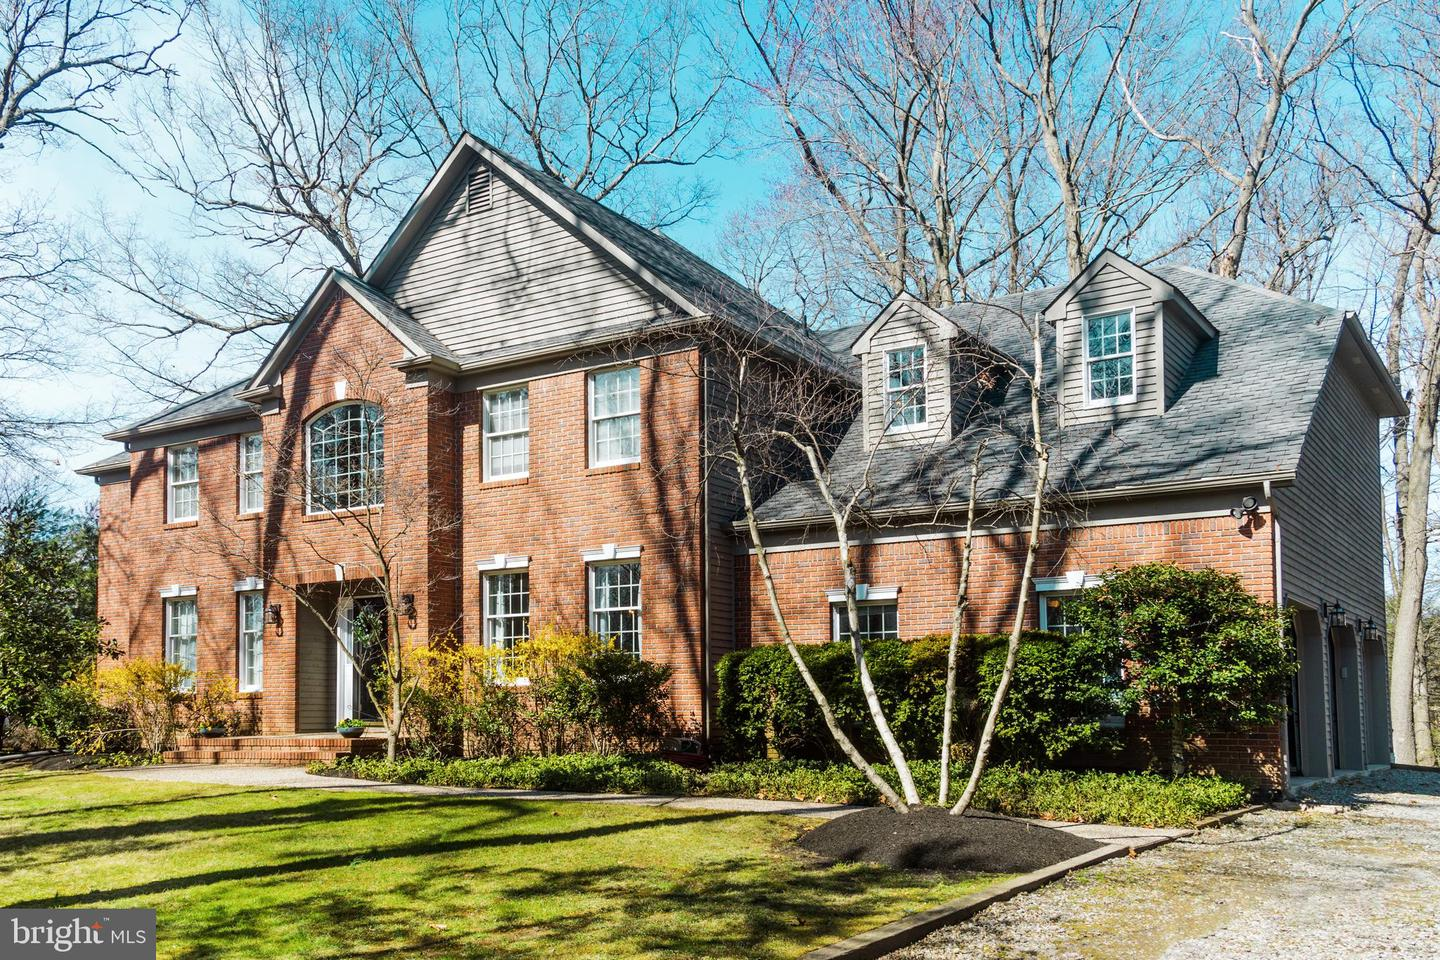 Single Family Homes for Sale at 1 QUAIL RIDGE Princeton Junction, New Jersey 08550 United States